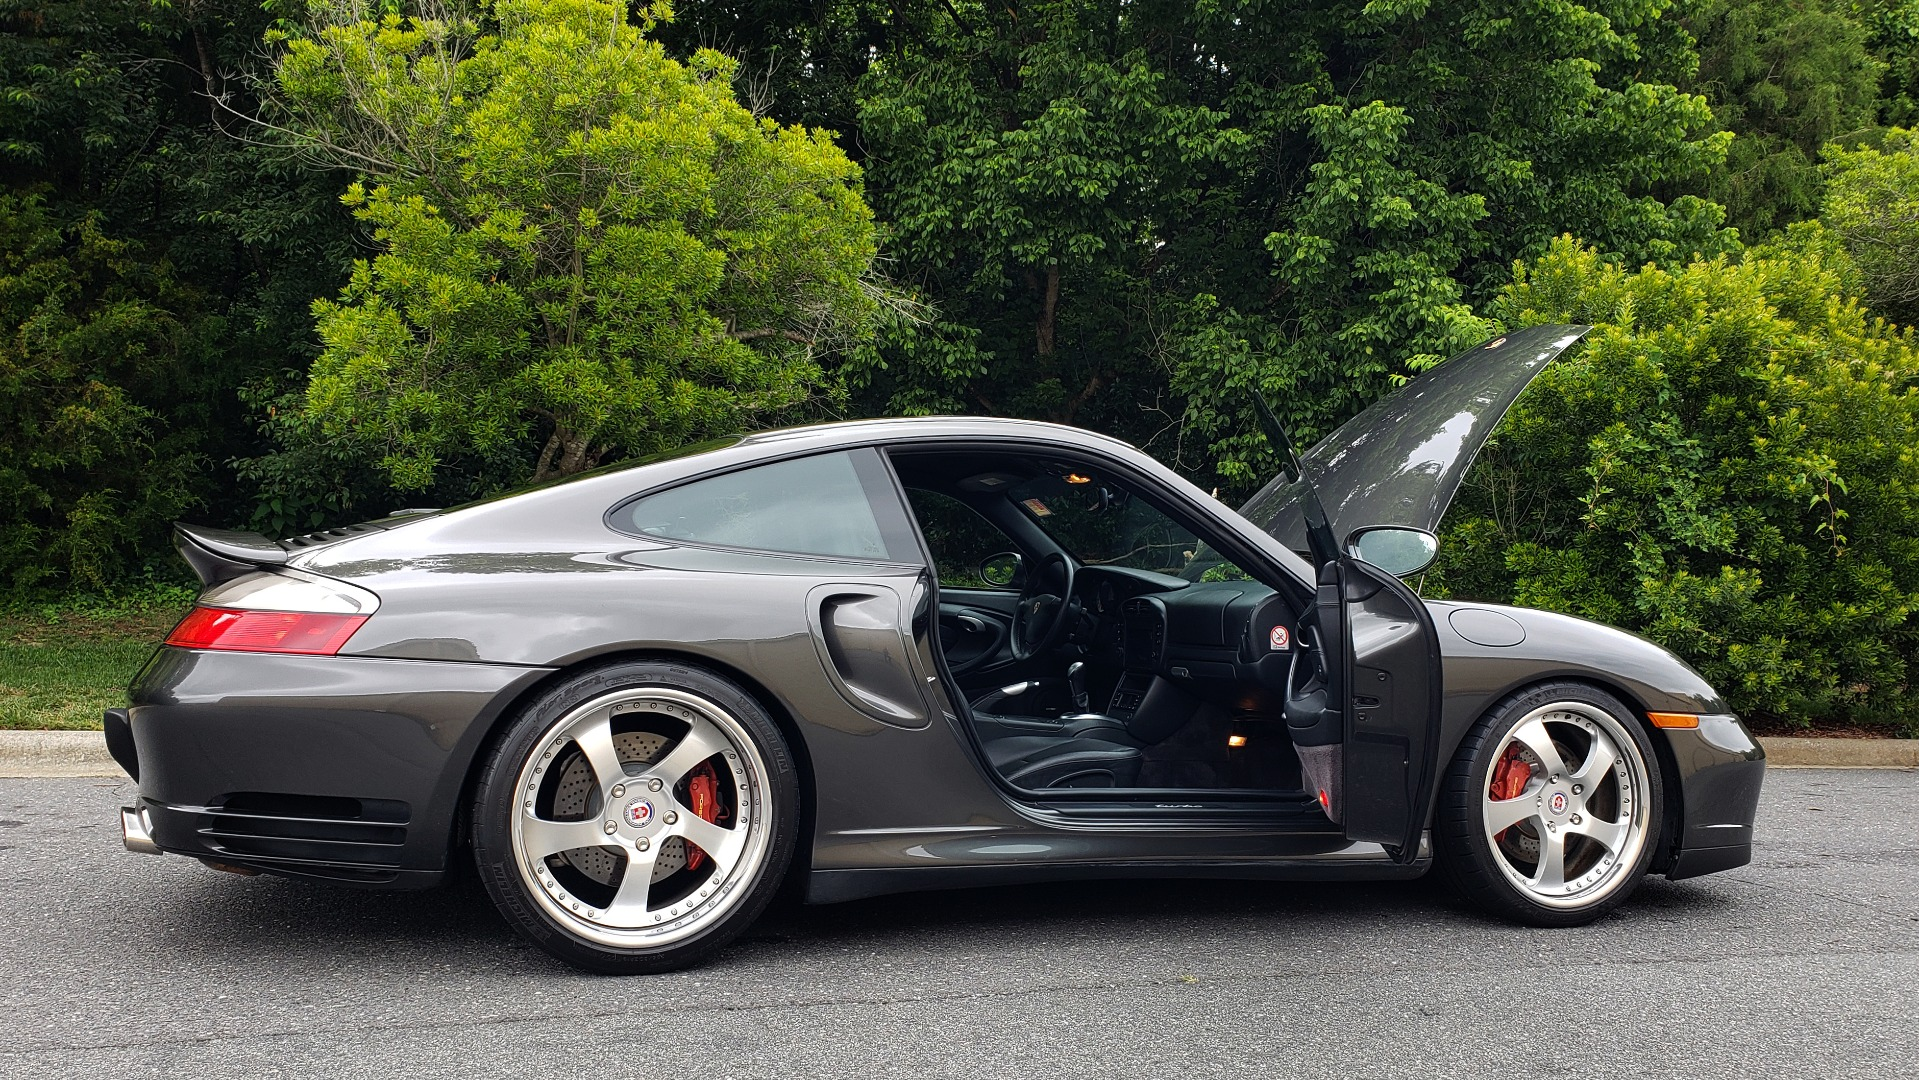 Used 2002 Porsche 911 CARRERA TURBO / 6-SPD MAN / ALPINE / BOSE / PERF UPGRADES for sale $53,995 at Formula Imports in Charlotte NC 28227 12